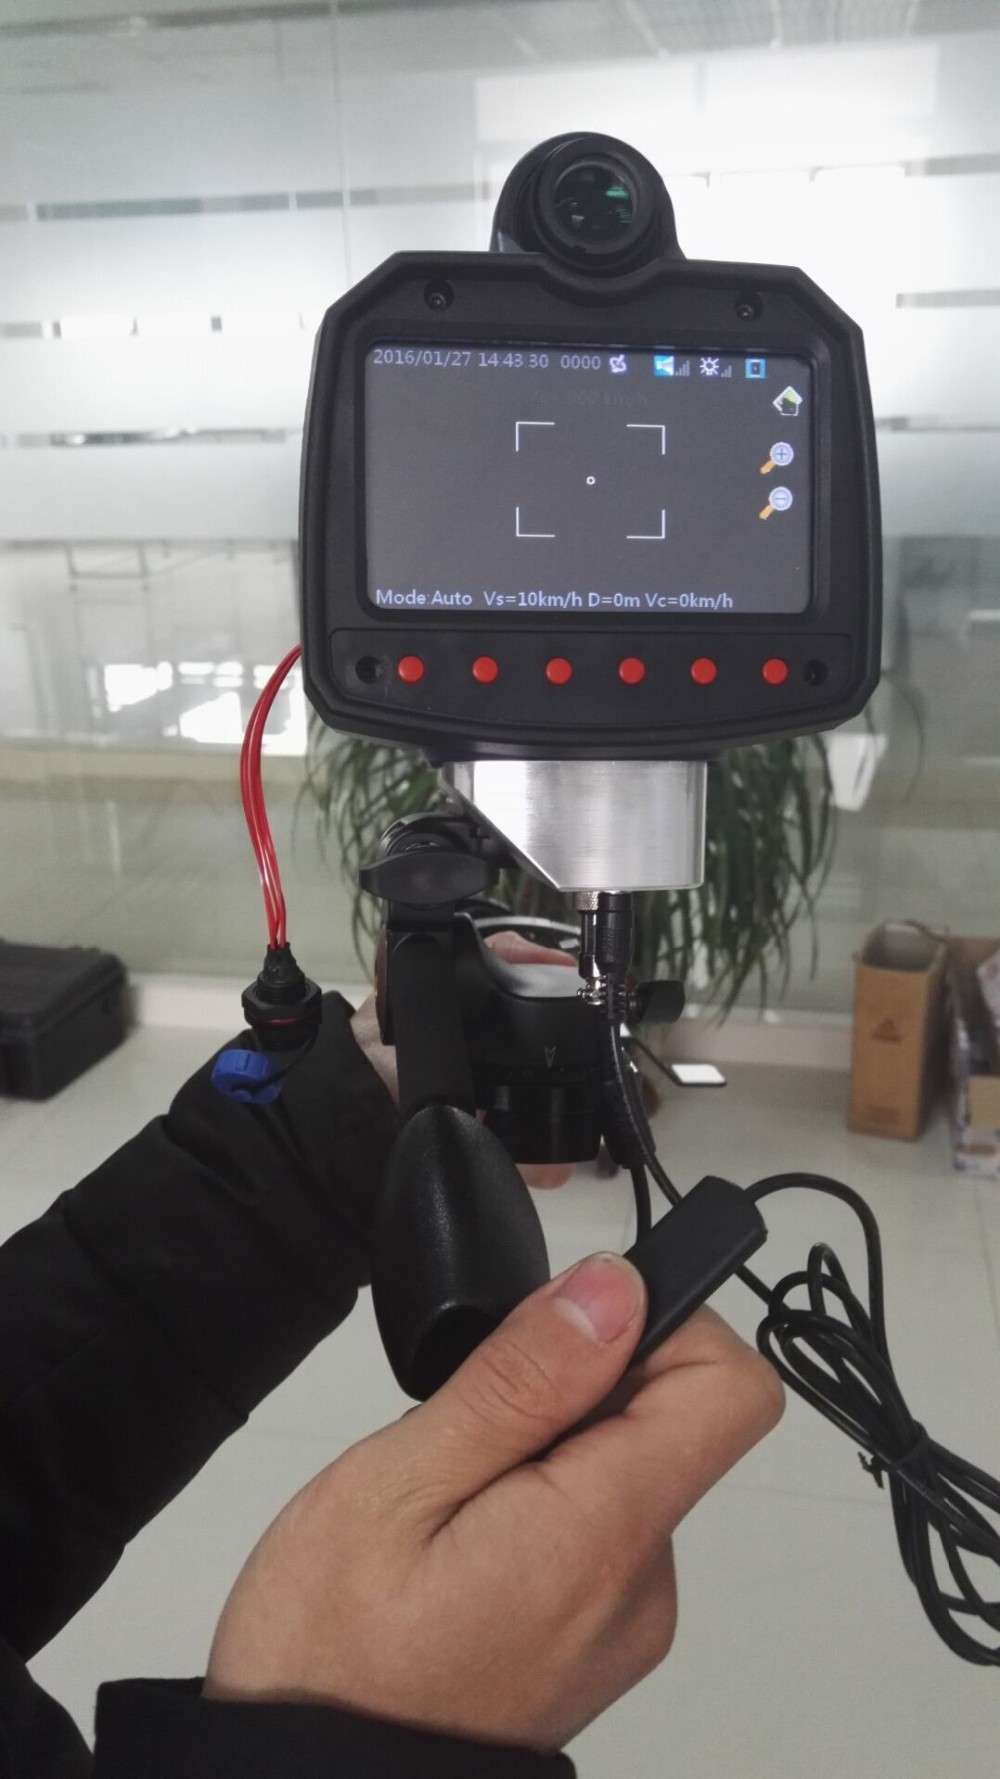 Car Mounting Speed Detection Devices And Handheld Uses LIDAR speed gun